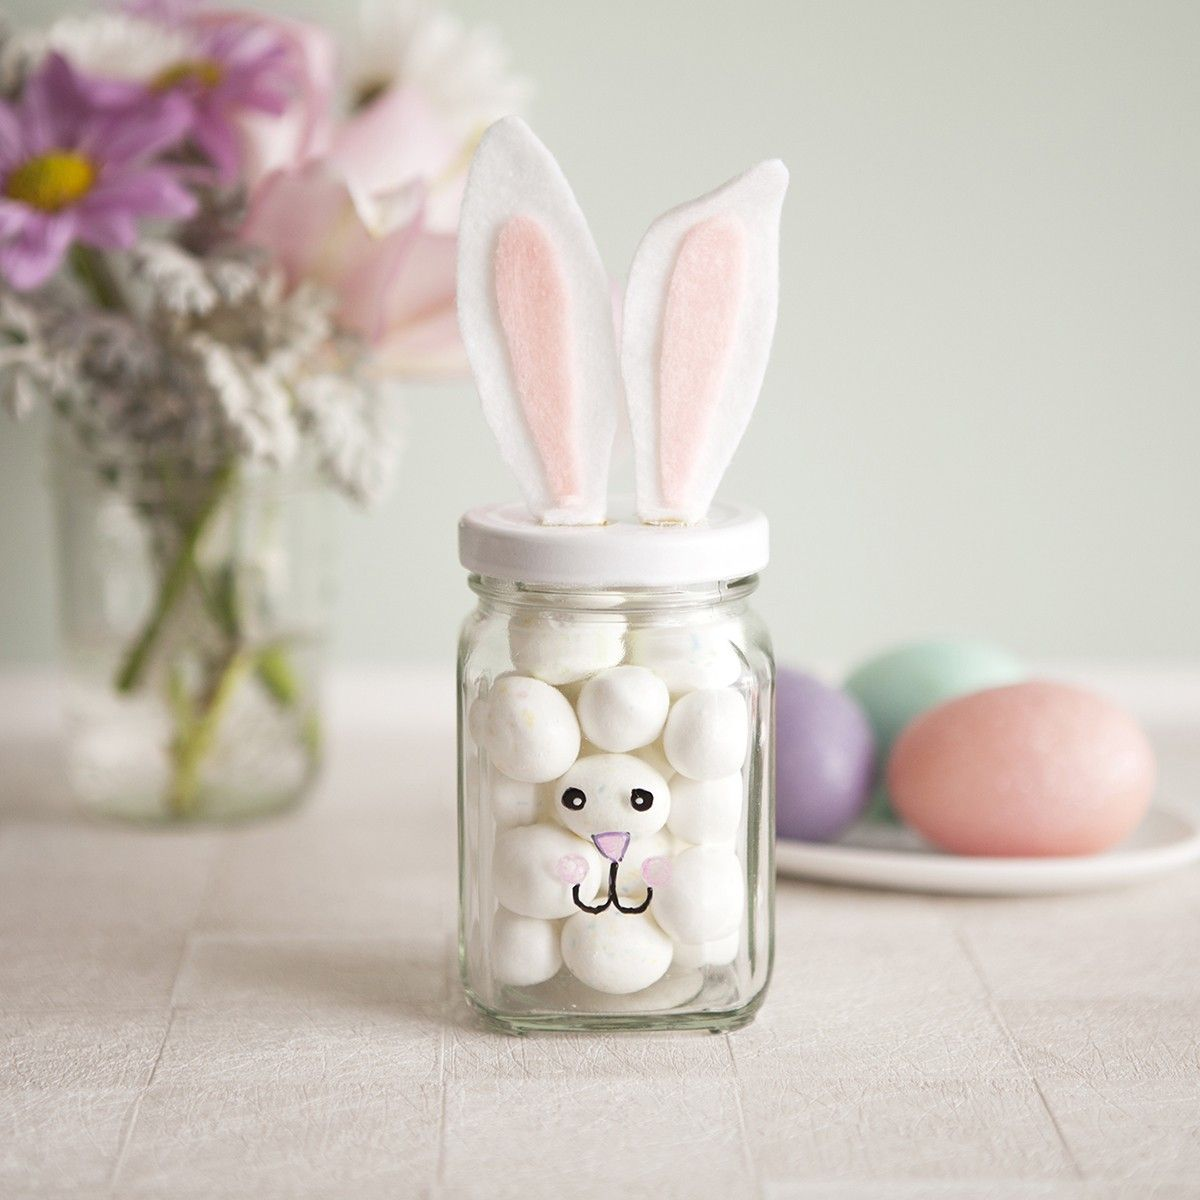 Beauteous diy easter bunny mason jar idea in pastel with long ears pastel easter bunny jars diy easter crafts for kids holiday gift ideas negle Choice Image